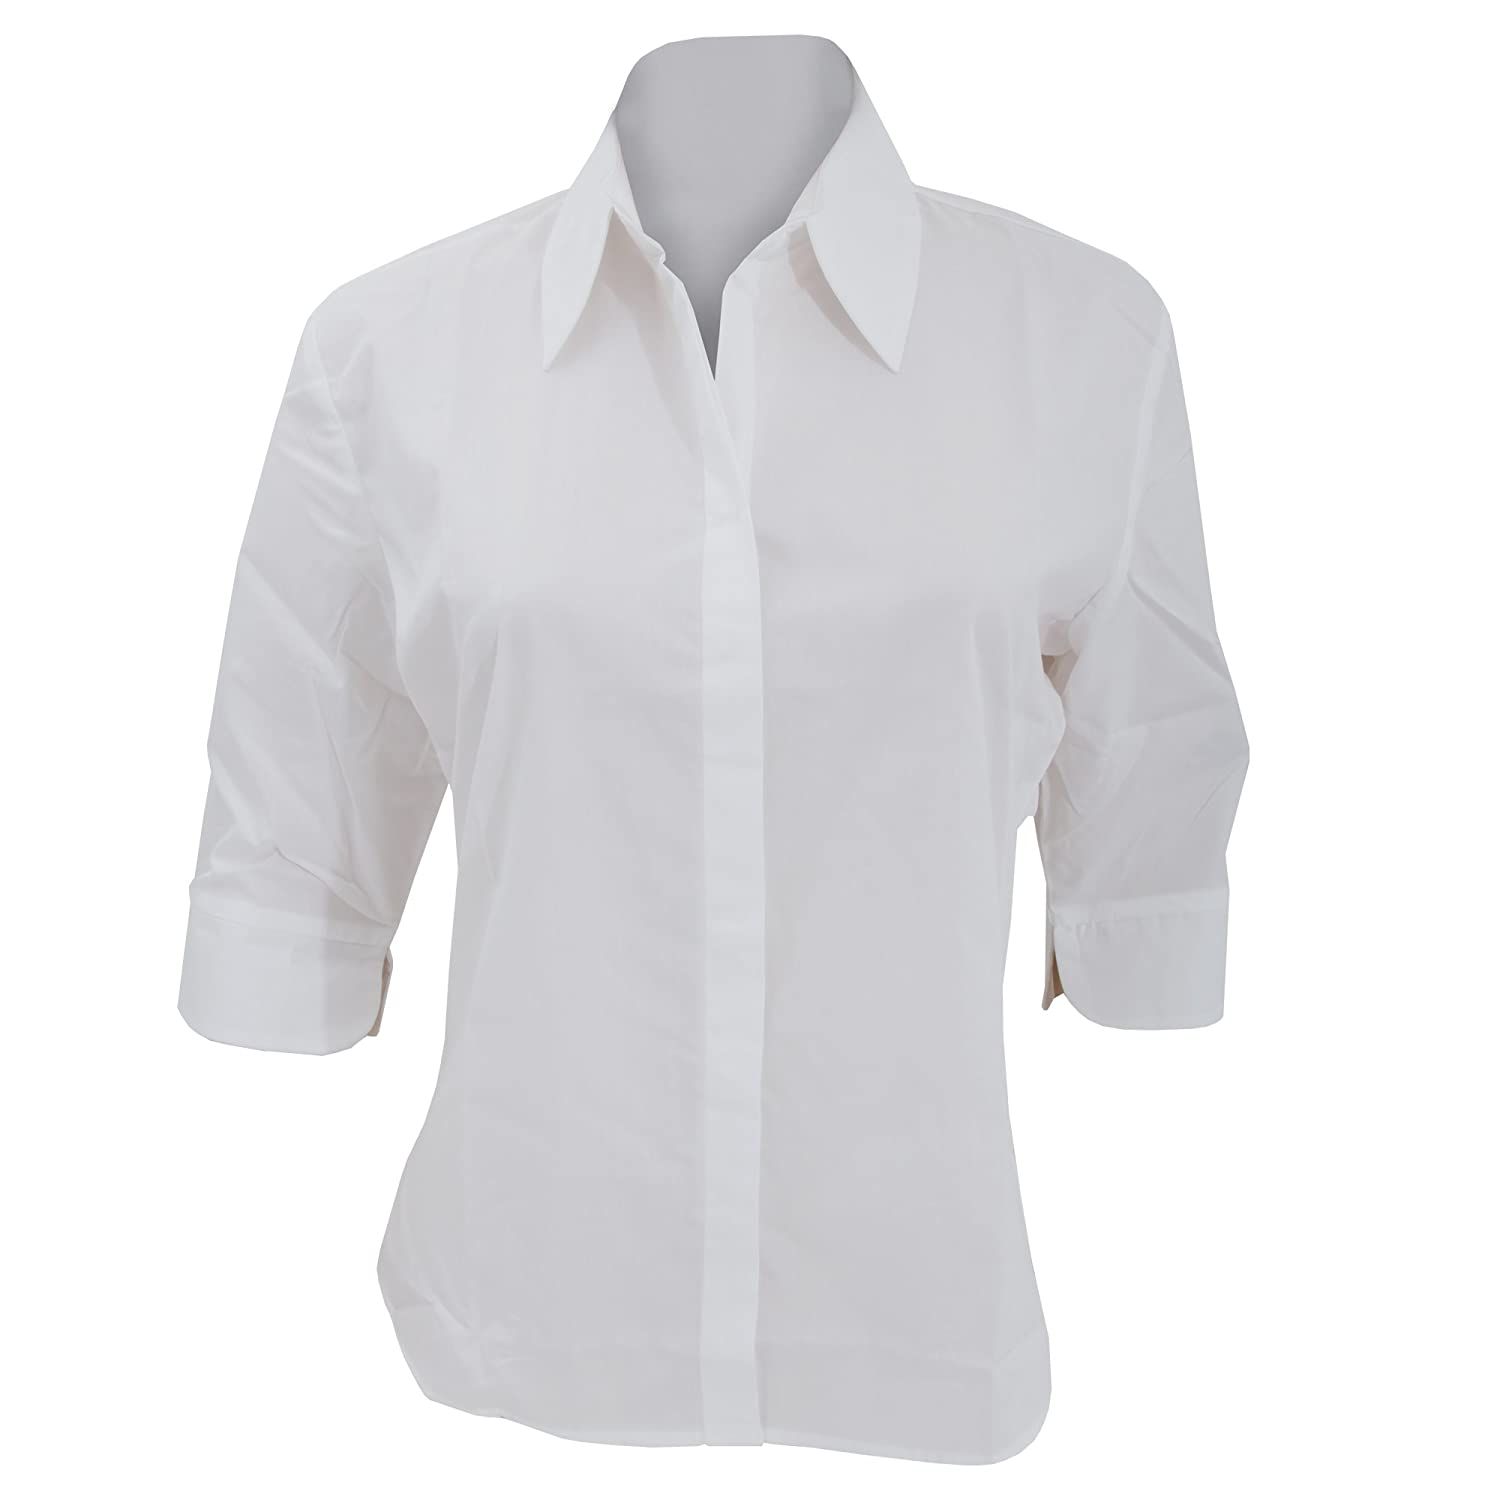 Kustom Kit Ladies Continental 3/4 Length Sleeve Blouse (14 US) (White) UTBC628_13